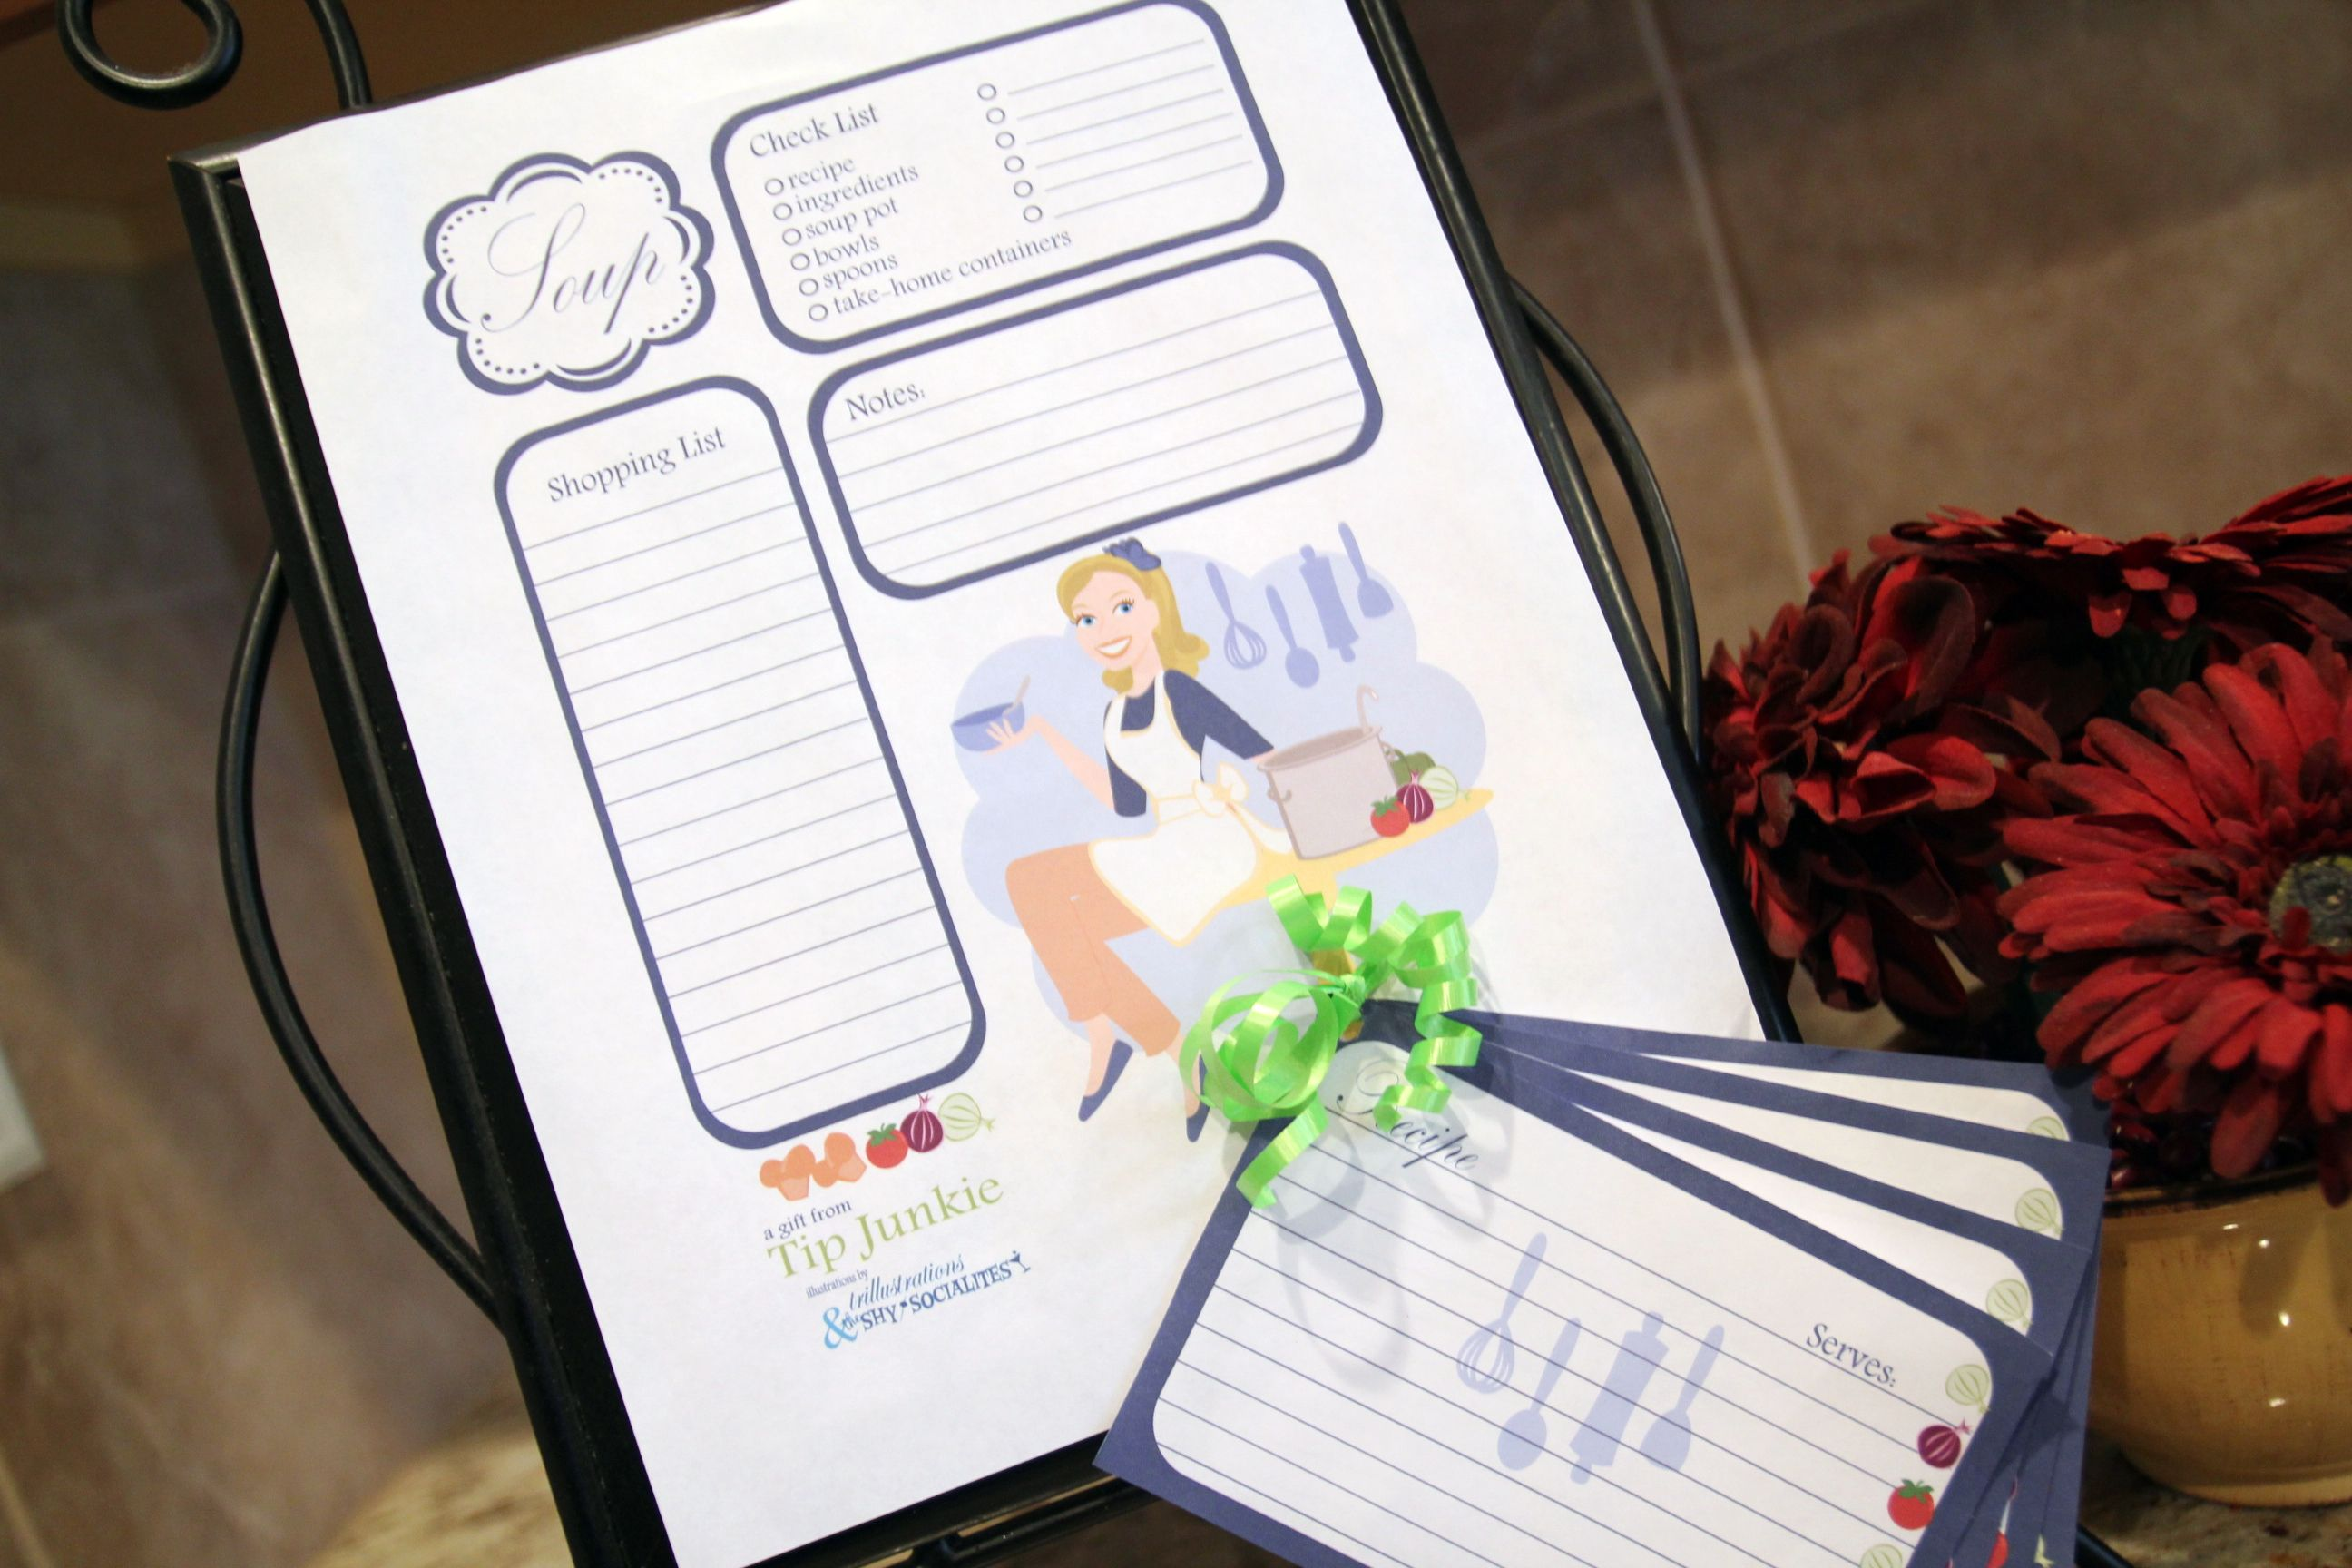 Fall Soup Party Recipe Cards And Shopping List